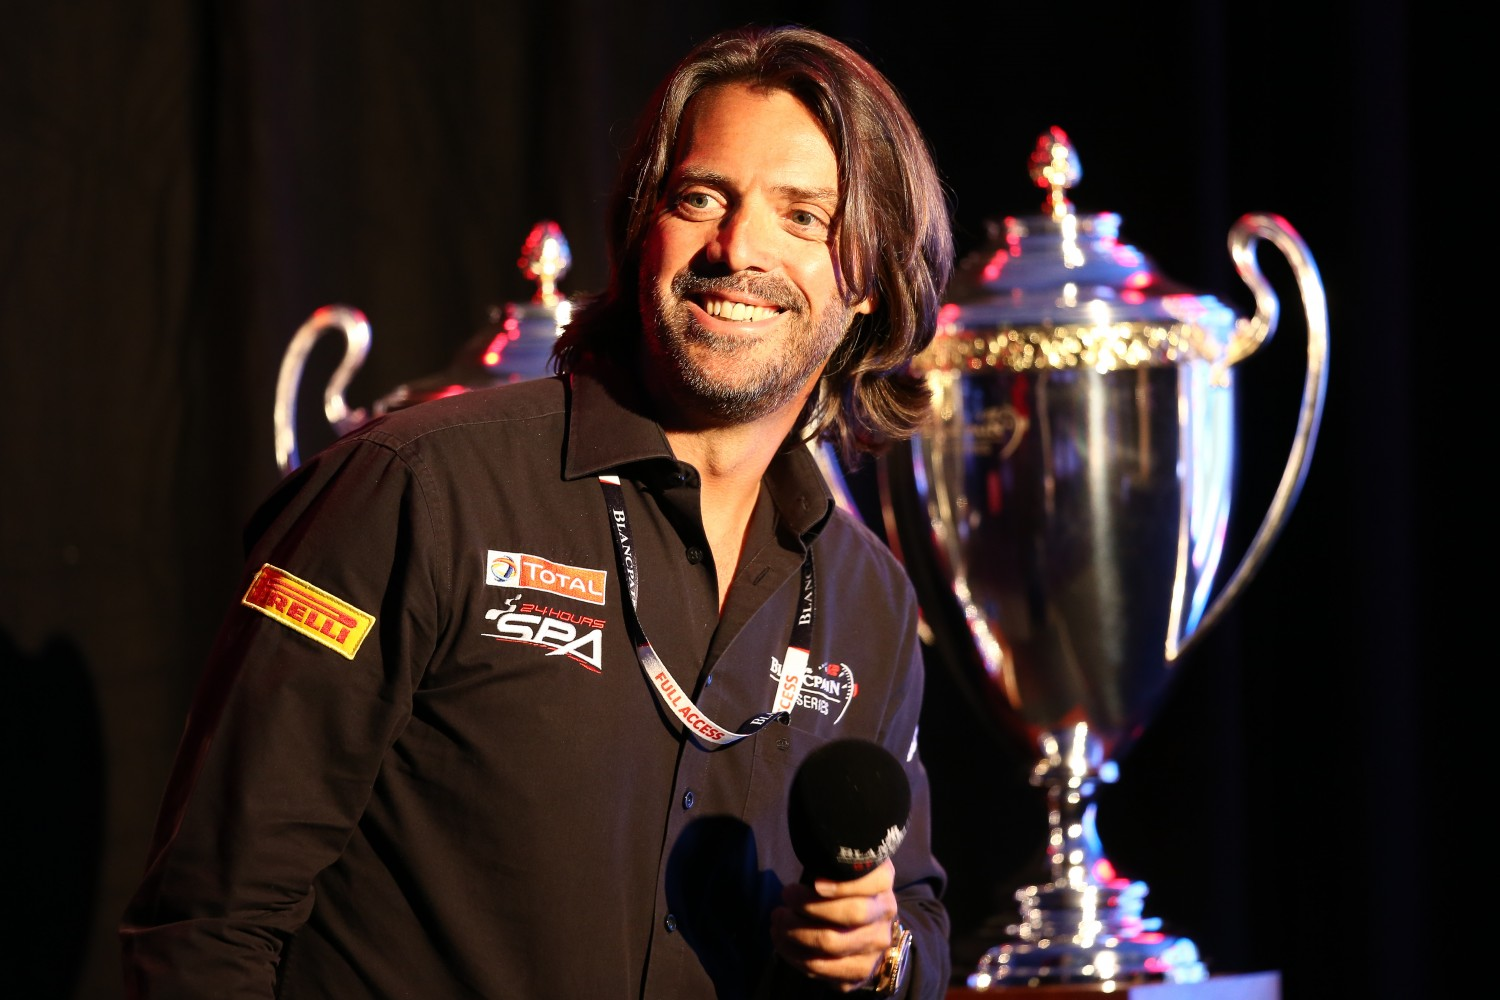 Stephane Ratel on the past, present and future of the Total 24 Hours of Spa